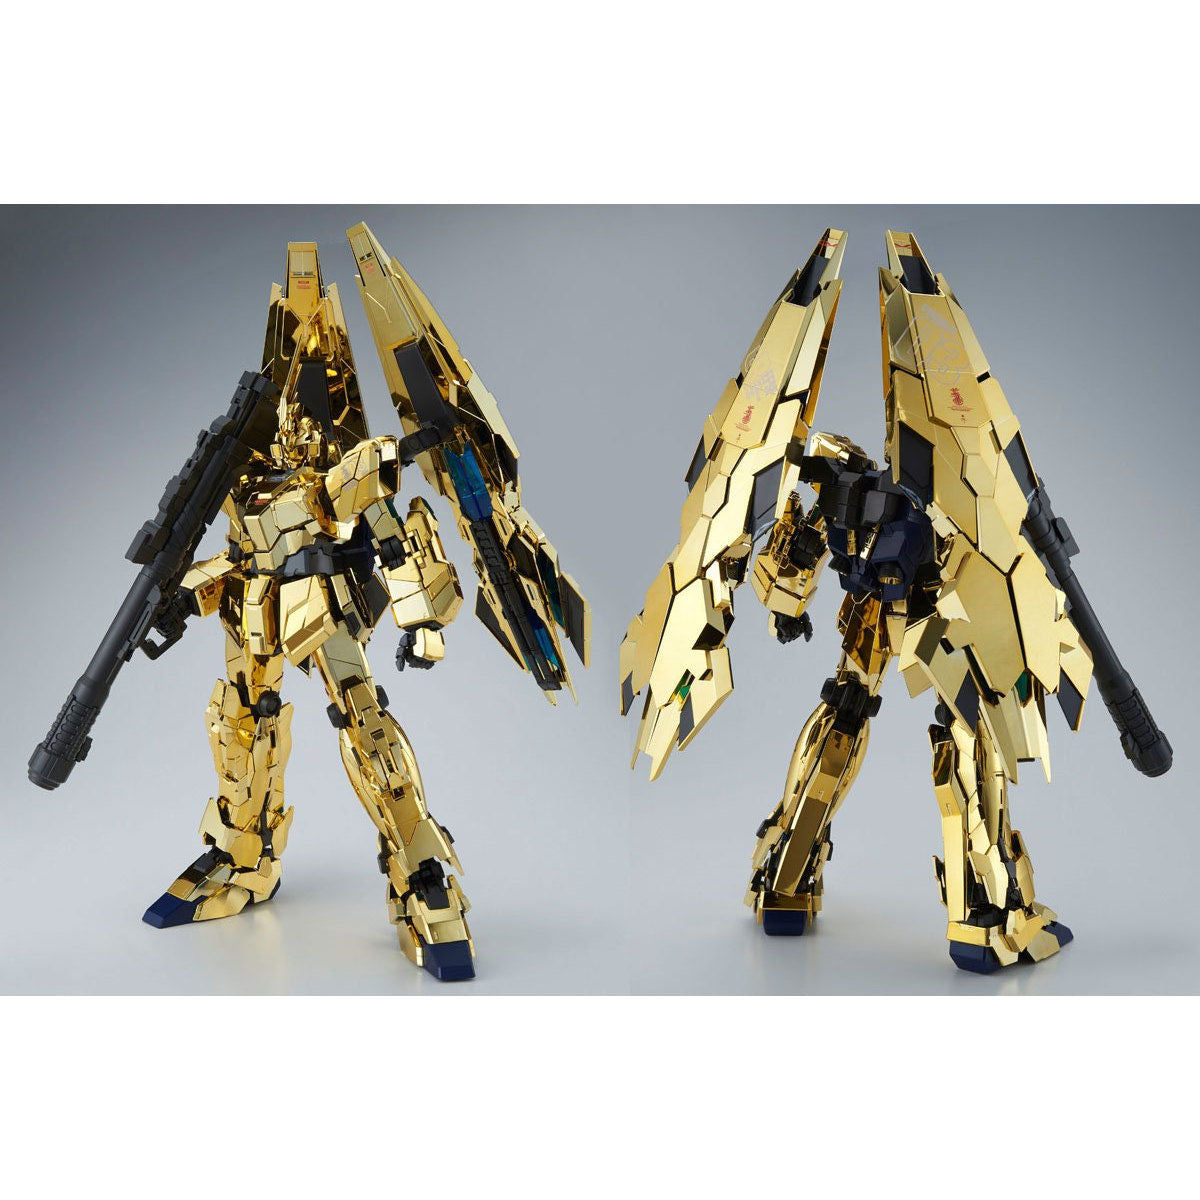 P-BANDAI: PG 1/60 UNICORN GUNDAM 03 PHENEX GOLD PLATED LED UNIT SOLD SEPARATELY [End of September]